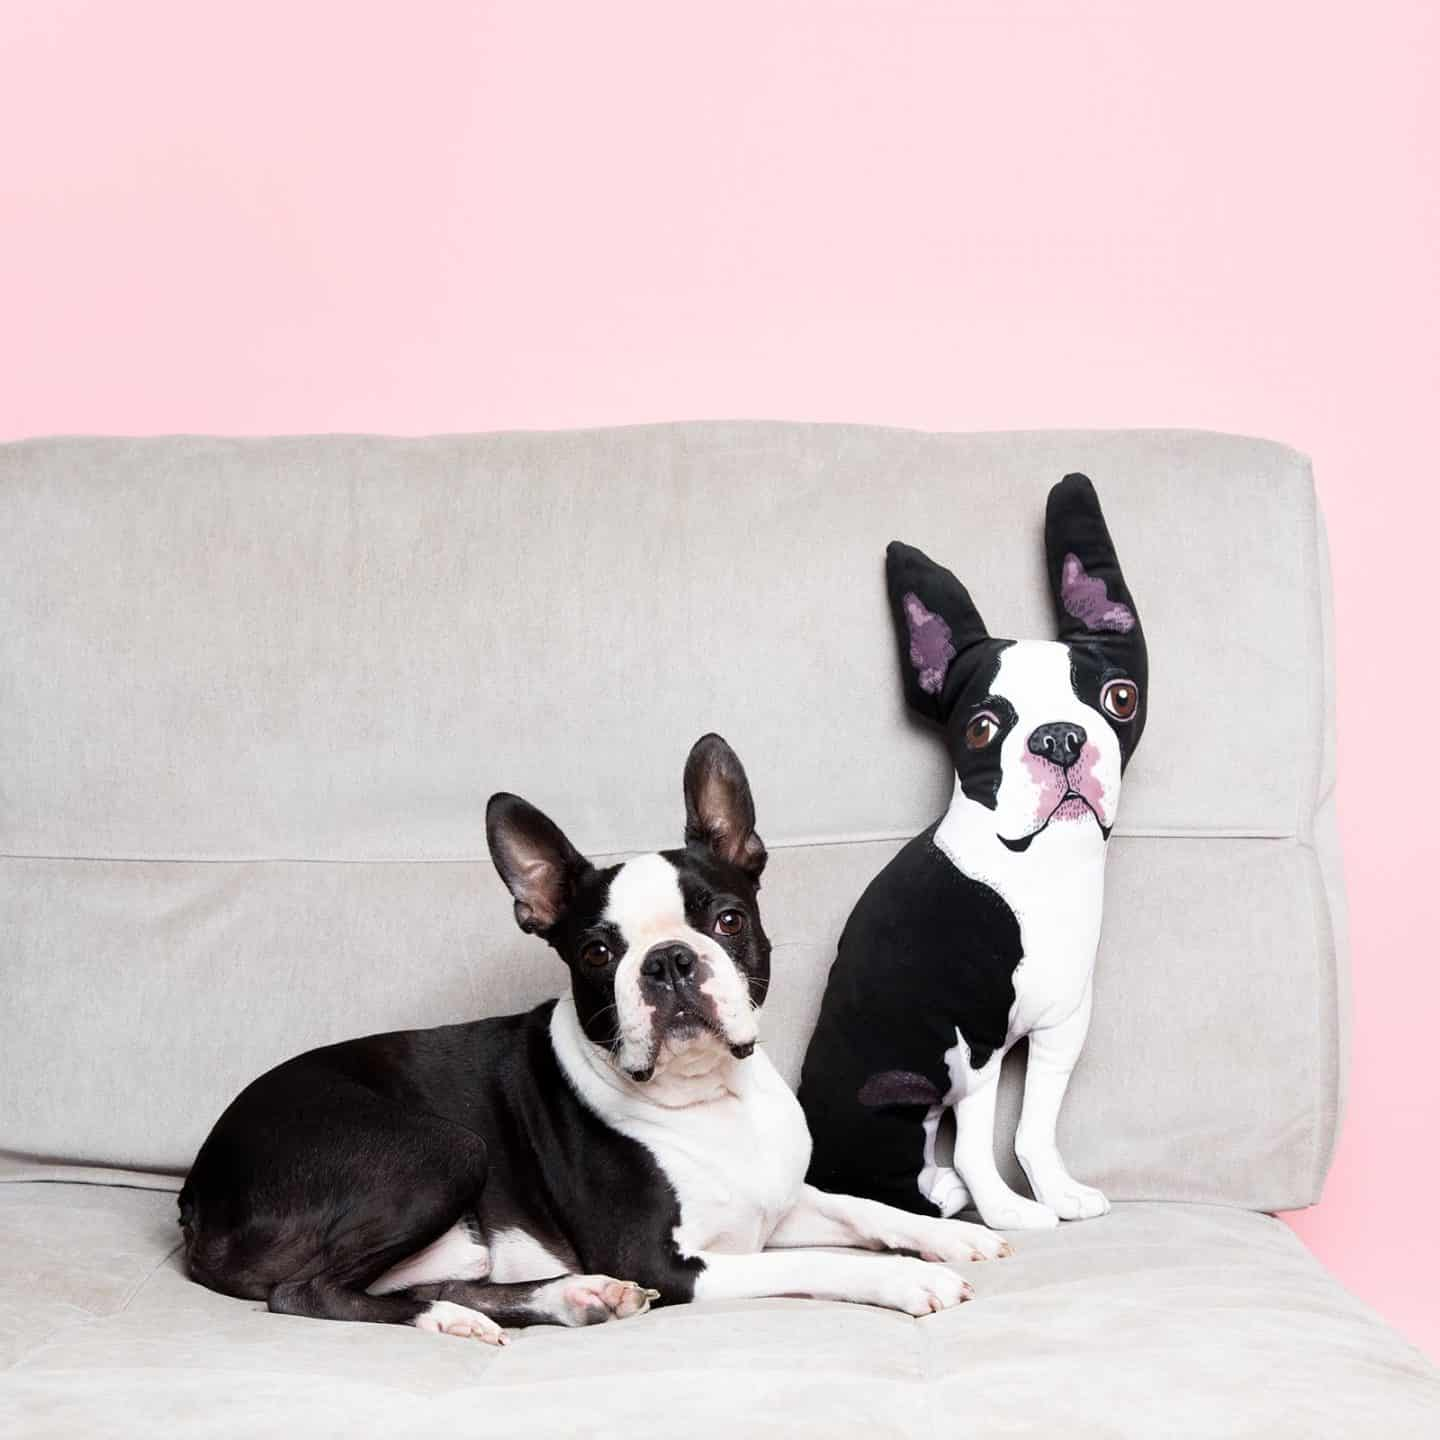 The Best Personalised Pet Gifts For Dog Owners - Customised Pet Pillows from Helen Penny